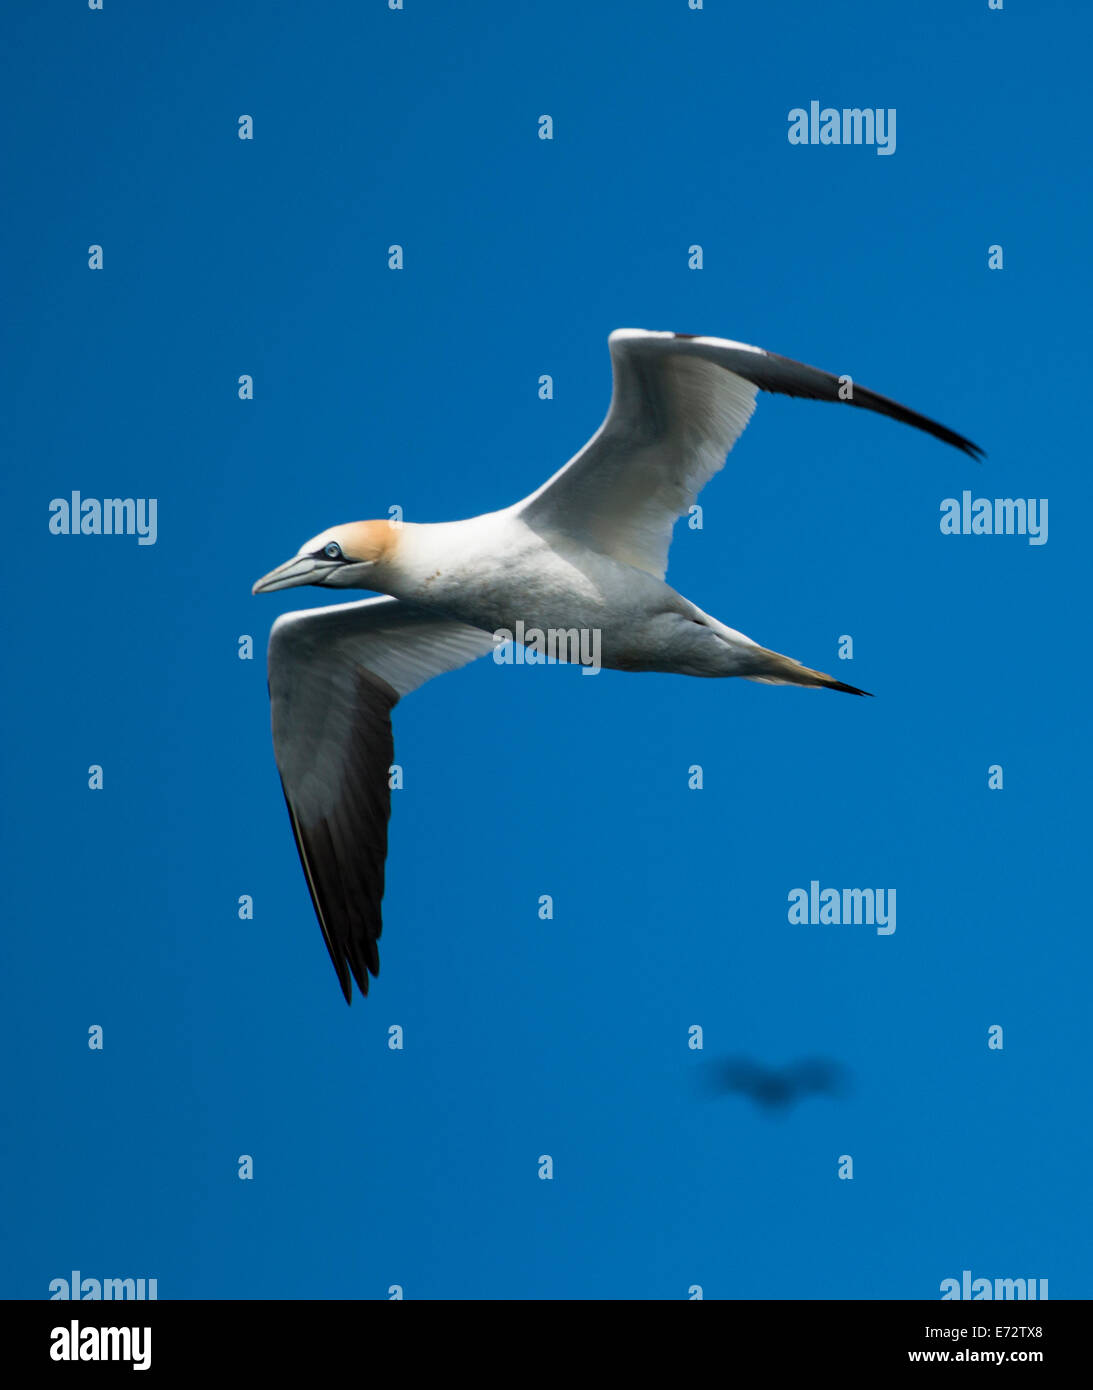 Gannet in flight - Stock Image